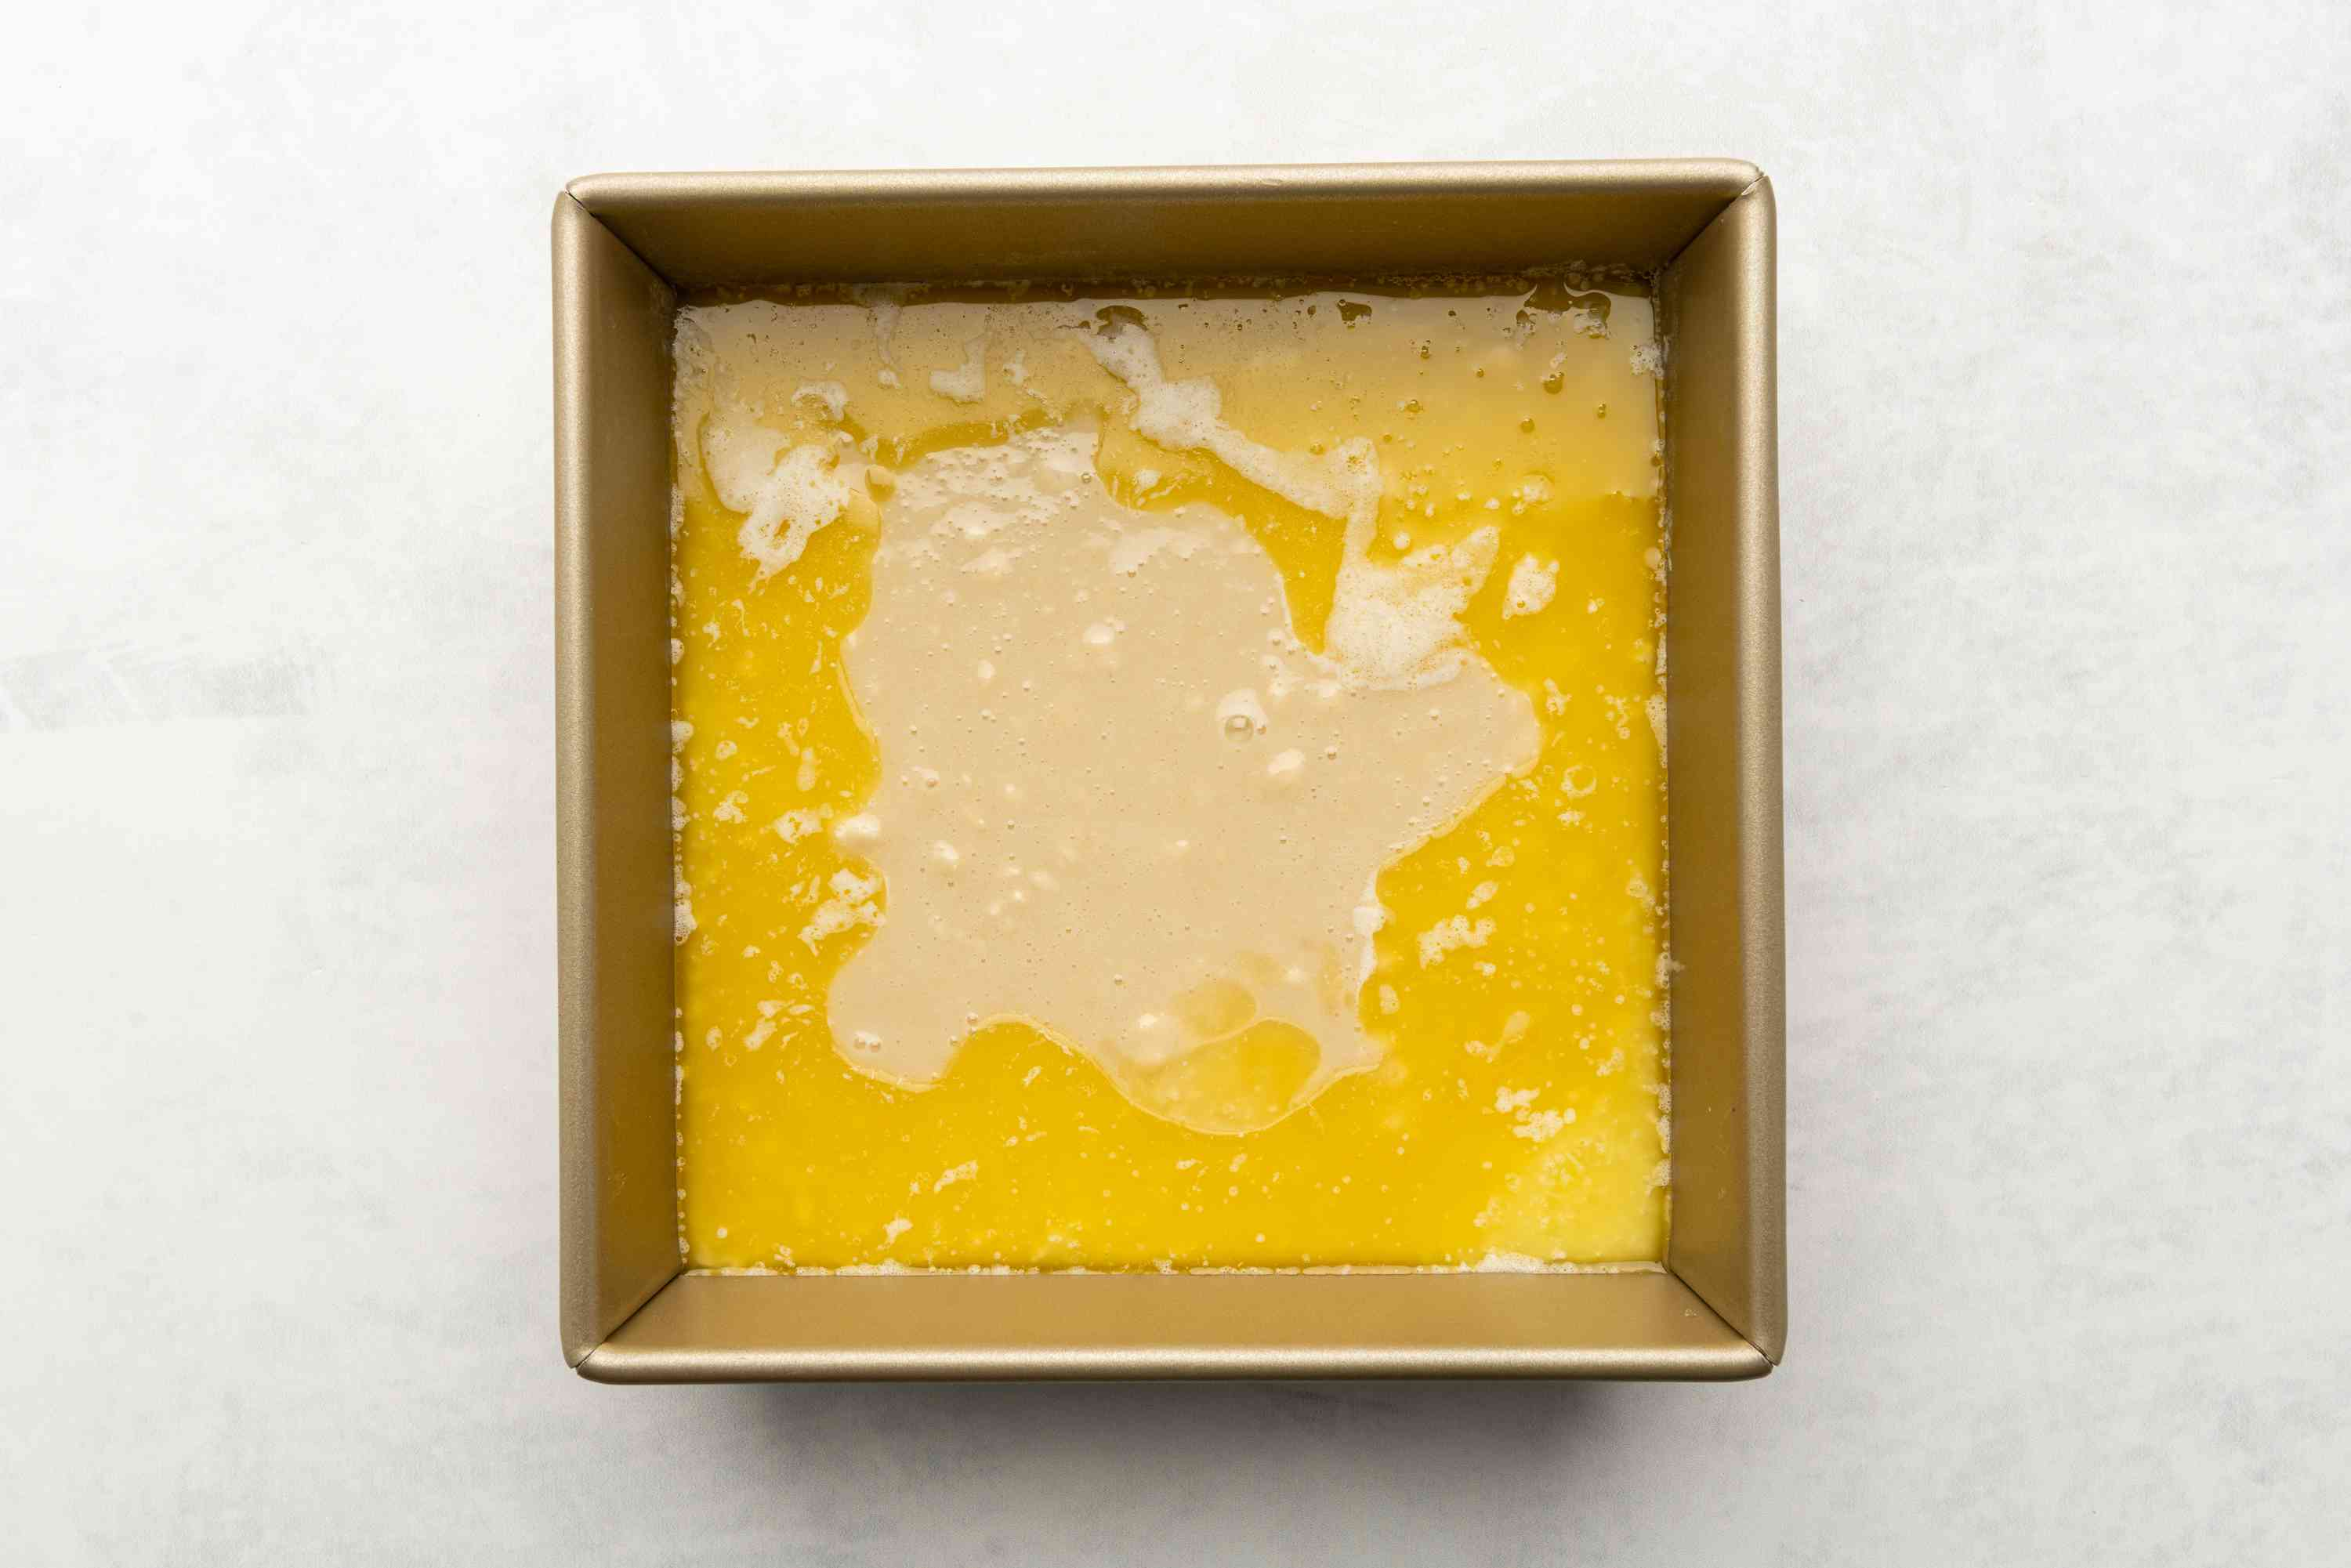 melted butter in a baking dish